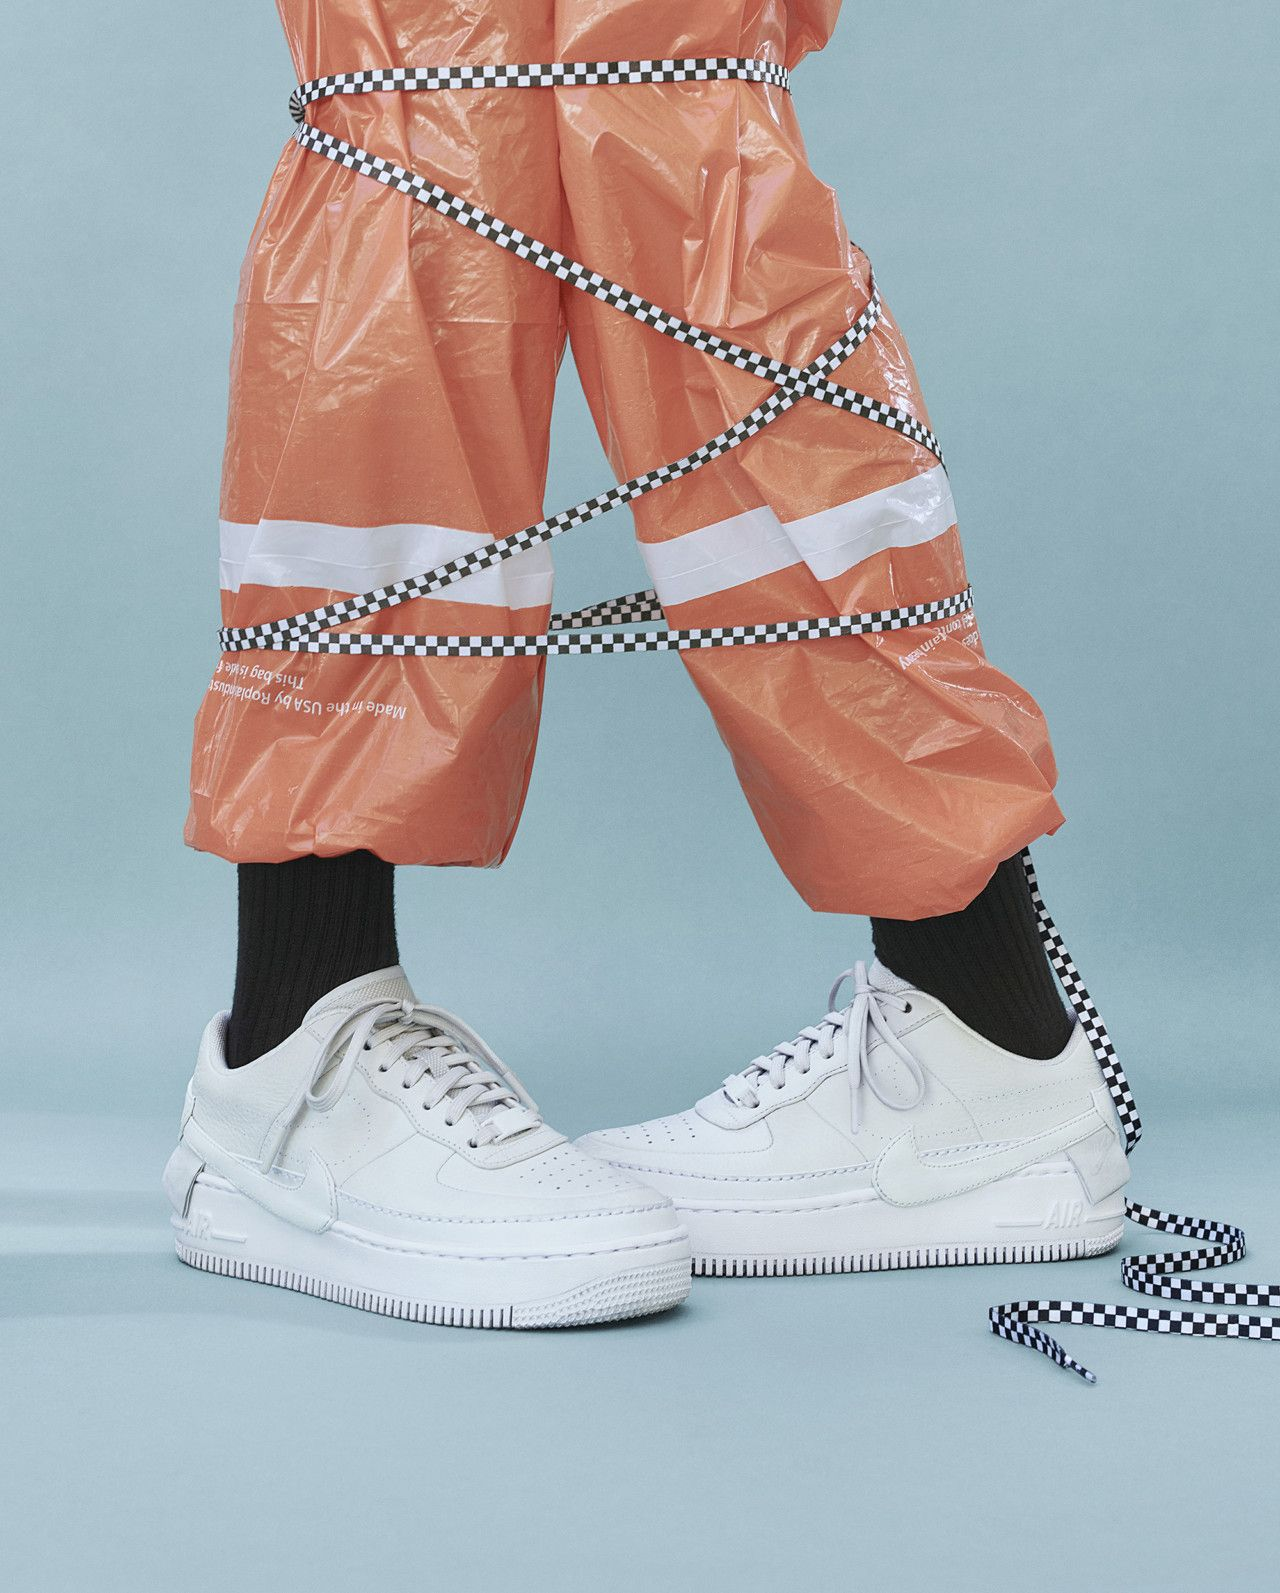 The 1 Reimagined: 14 Women Remix Iconic Nike Silhouettes